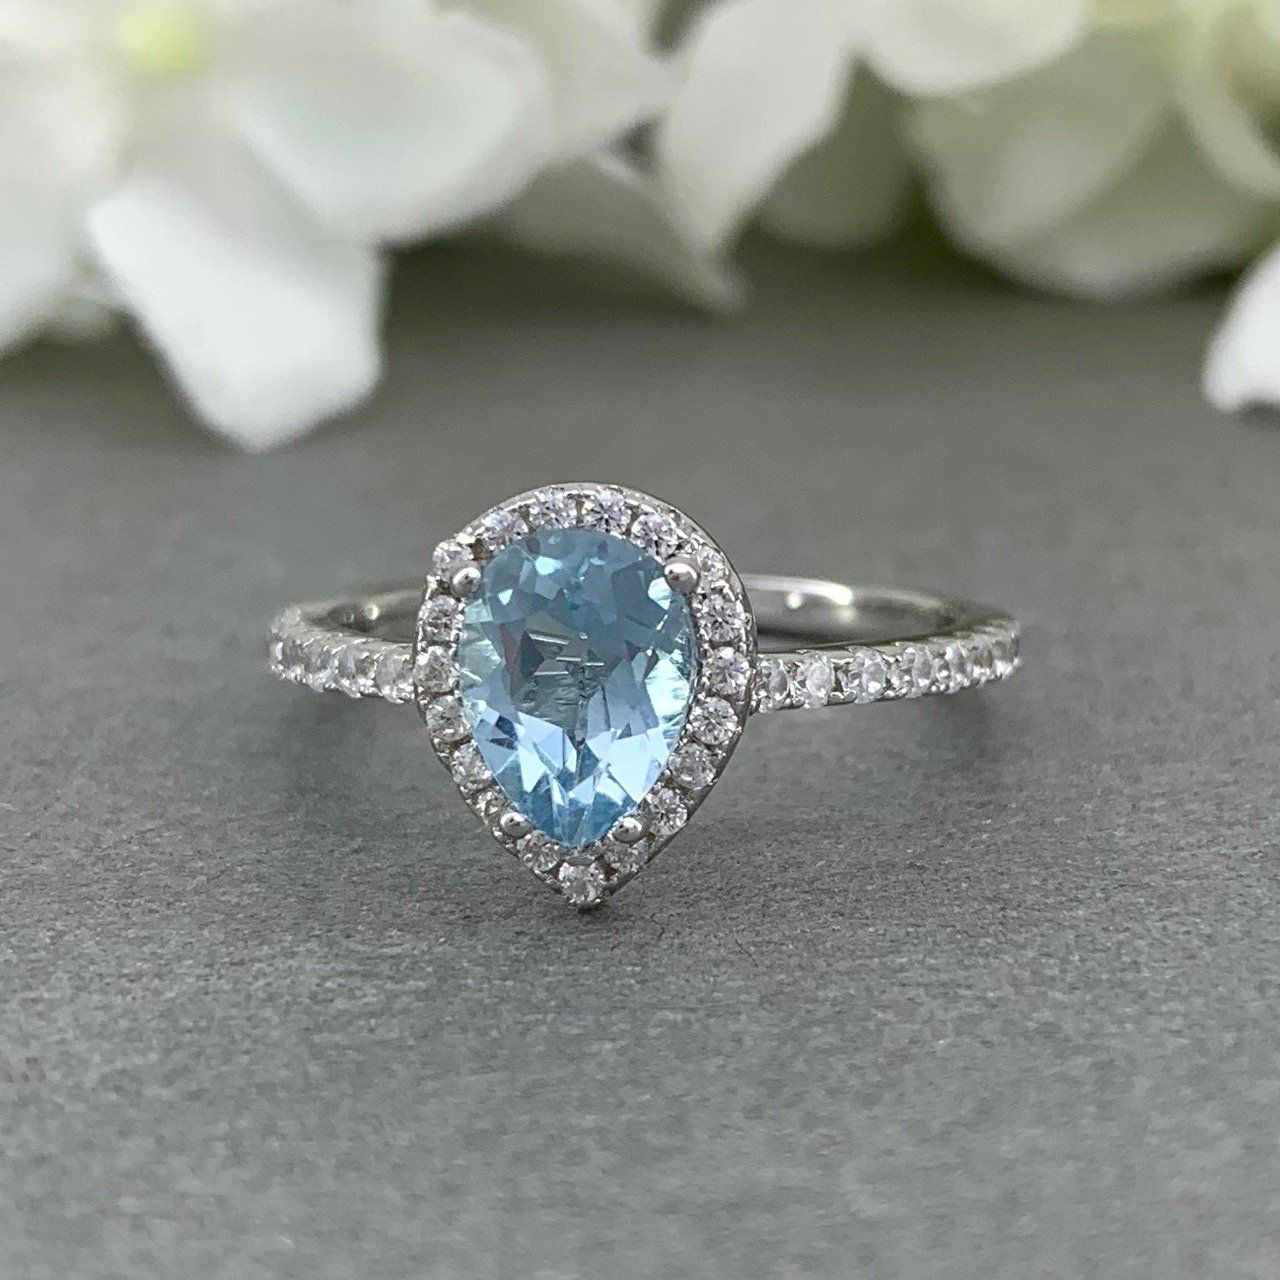 Blue Topaz Ring Engagement Halo Cluster Solid Sterling Silver Ladies